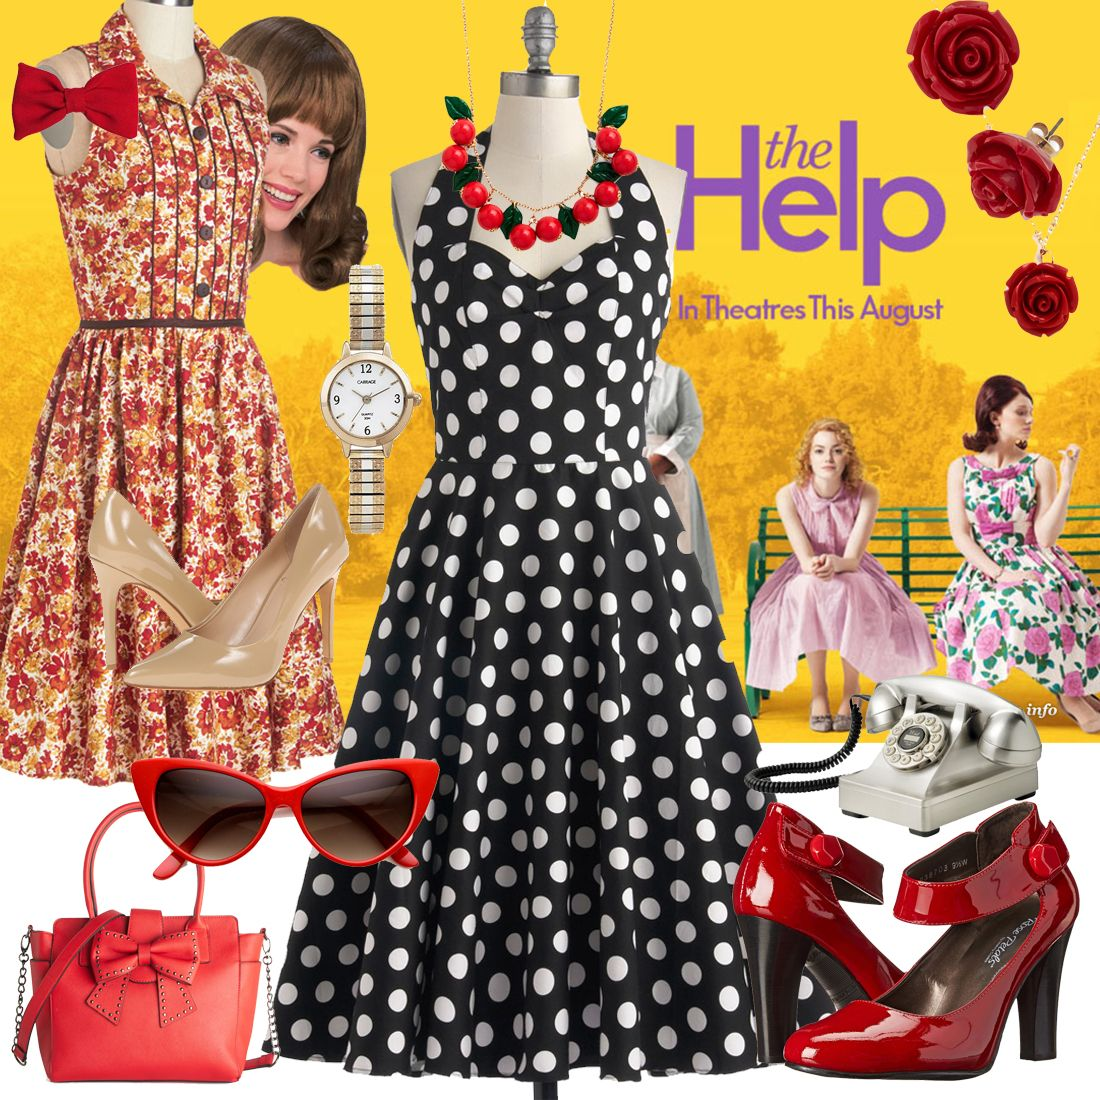 2019 year look- Inspiration Inspirationmovie fashion inspired by the help